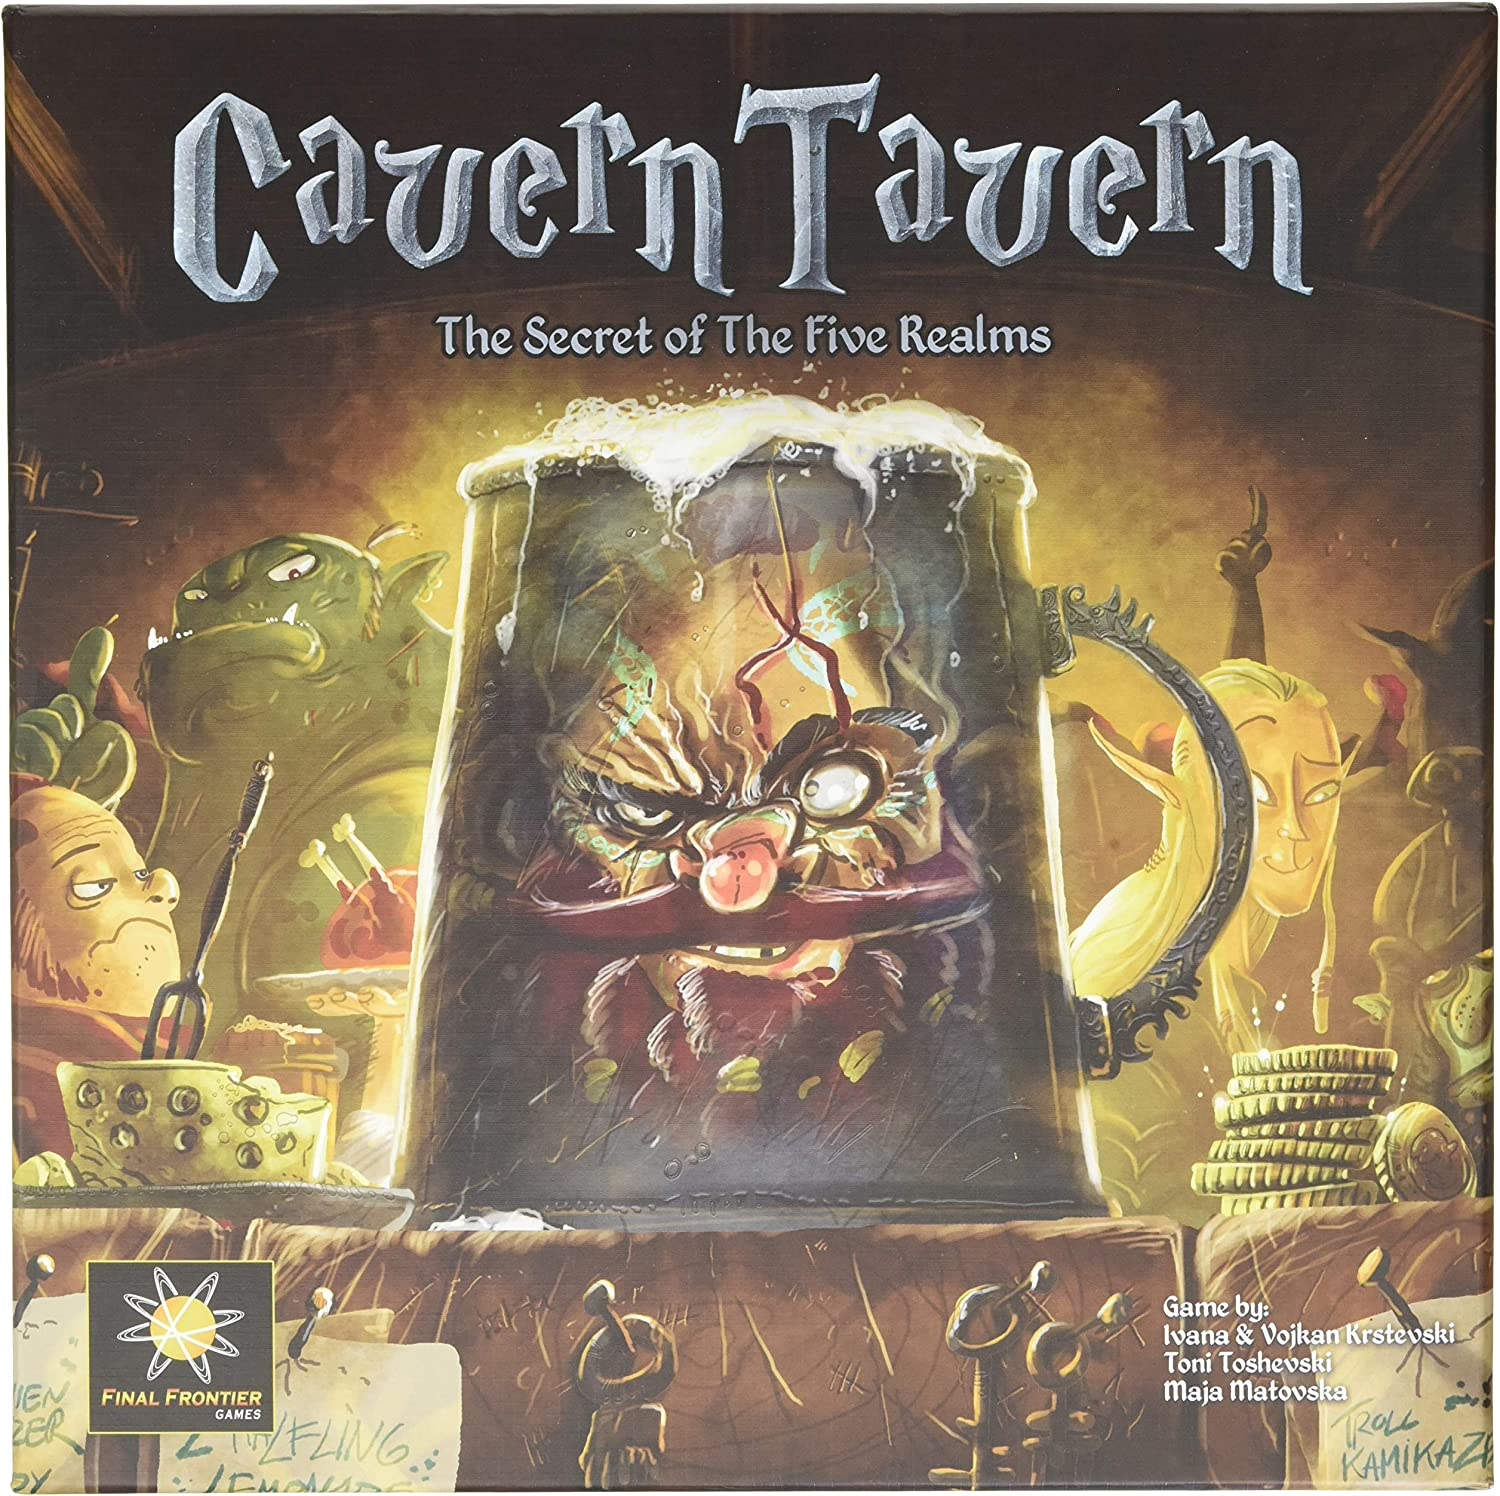 Cavern Tavern  The Secret of The Five Realms Game  Final Frontier Games